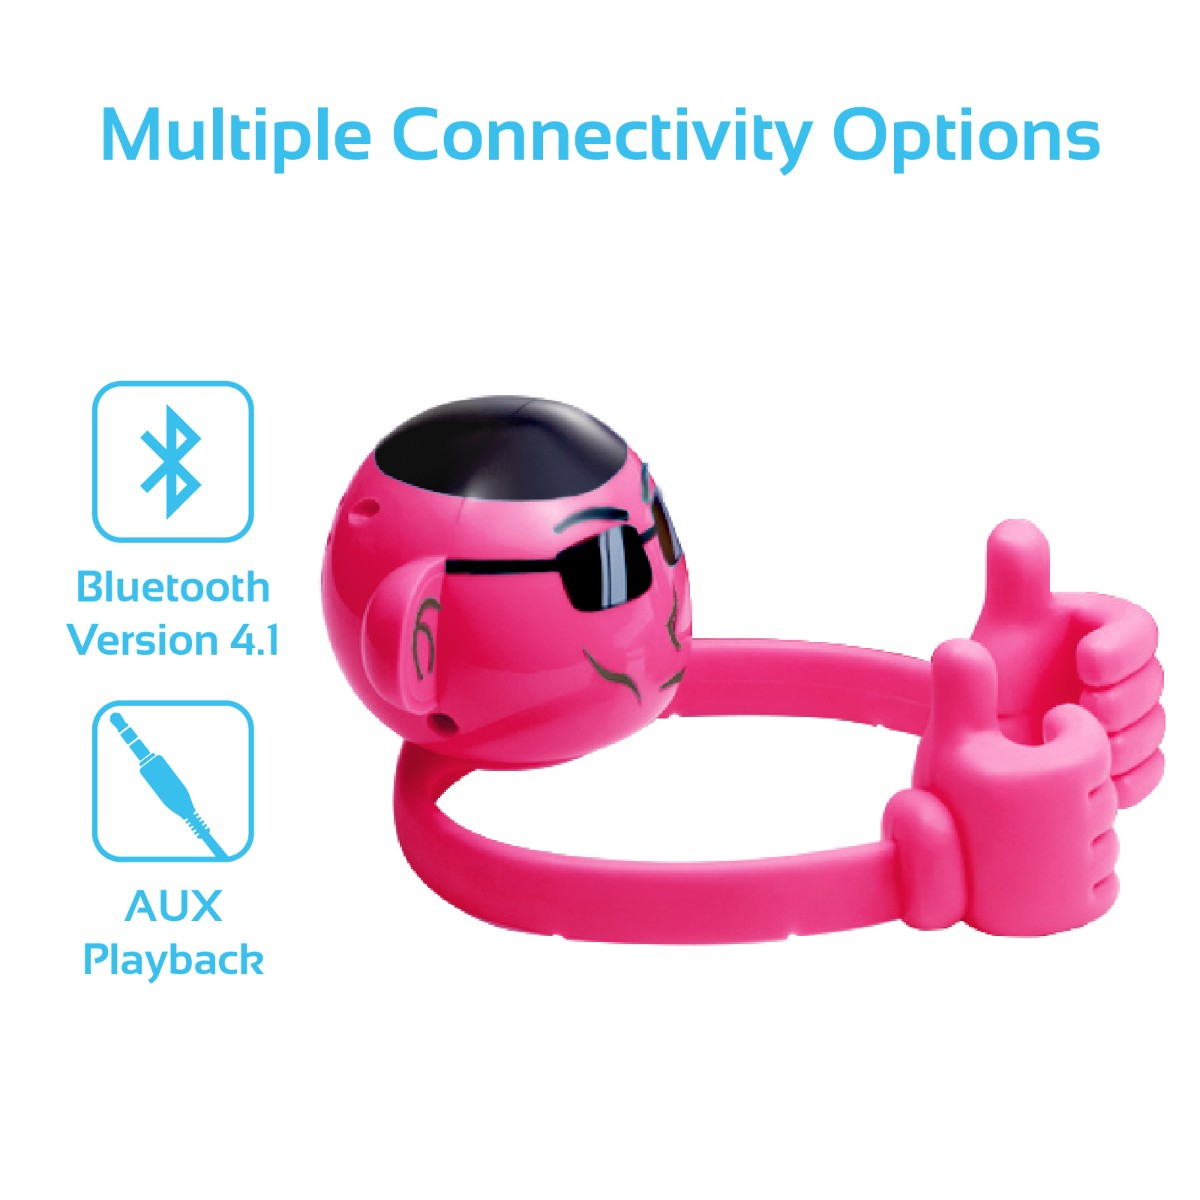 Promate Bluetooth Speaker, Portable Monkey Shape Multifunction Wireless Speaker with 3.5mm Audio for Tablets, Cell Phones - Pink